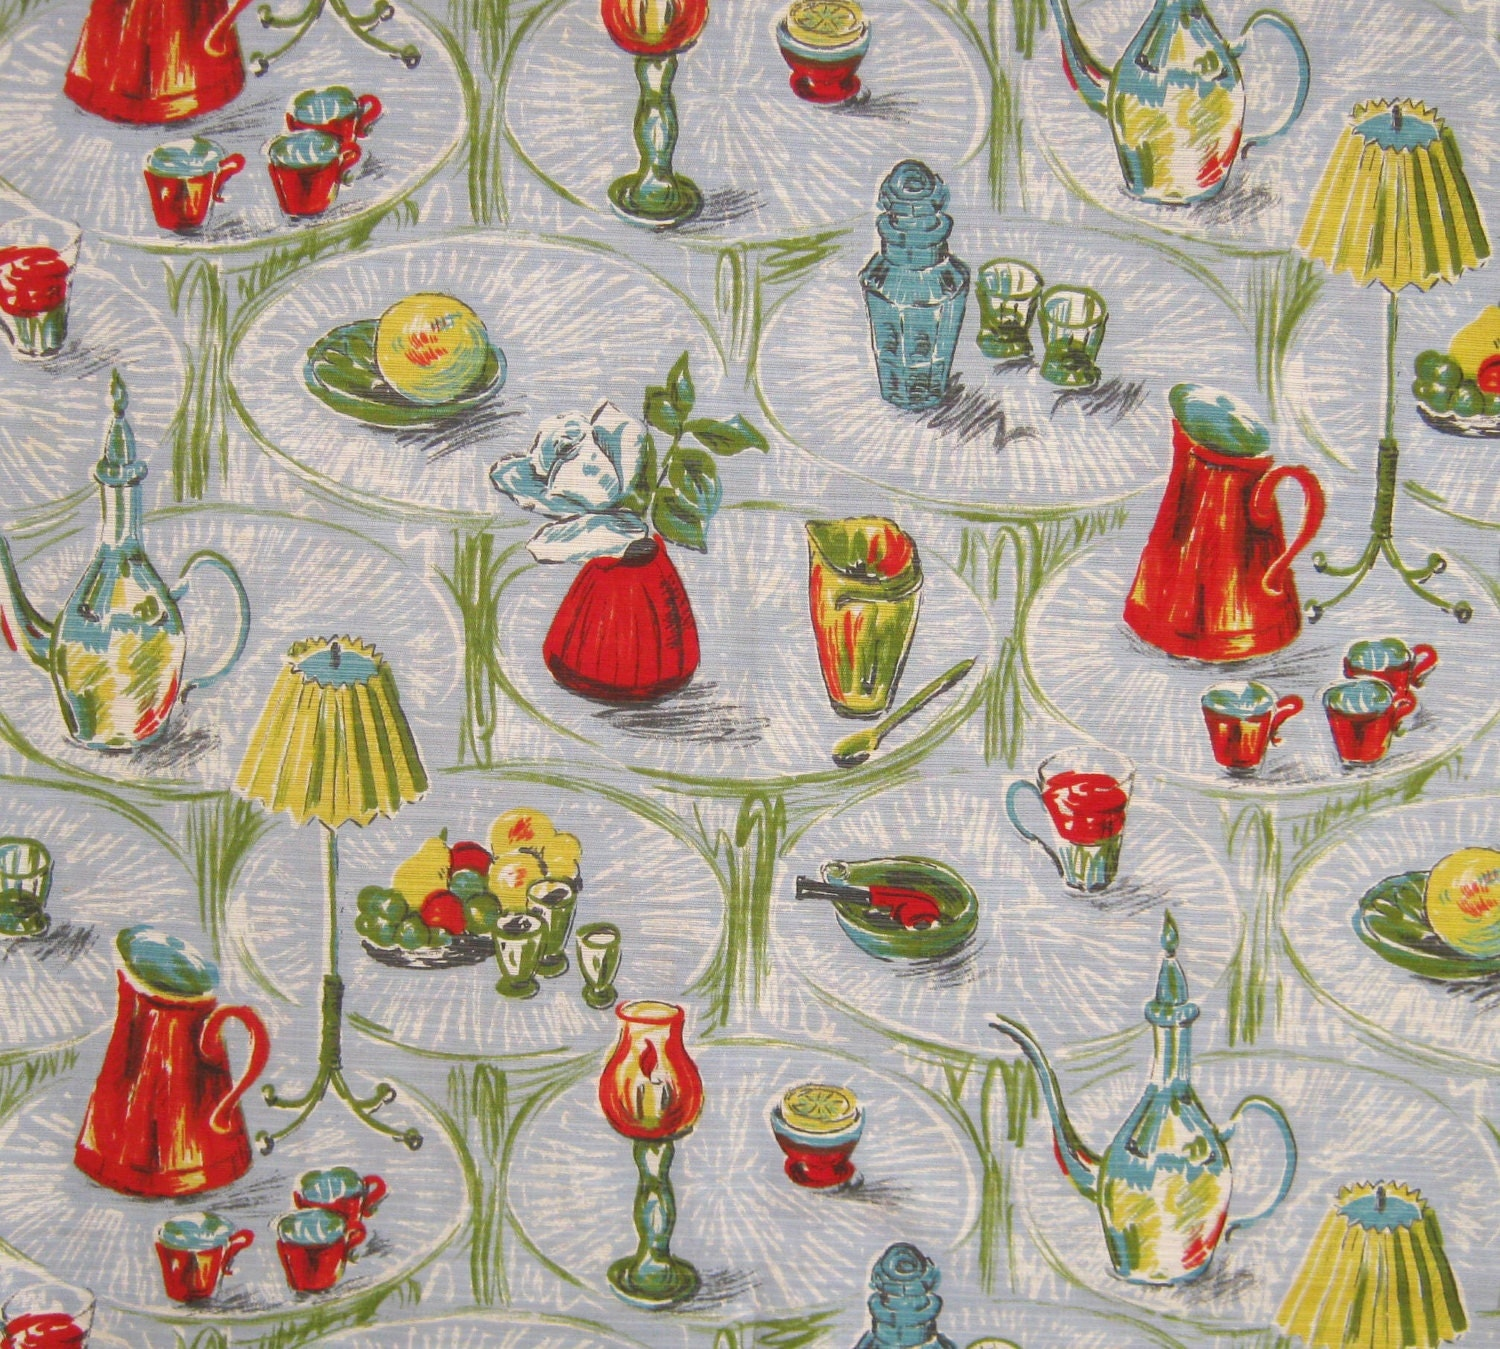 Original Vintage Fabric Remnant 1950s Kitchen Home Design